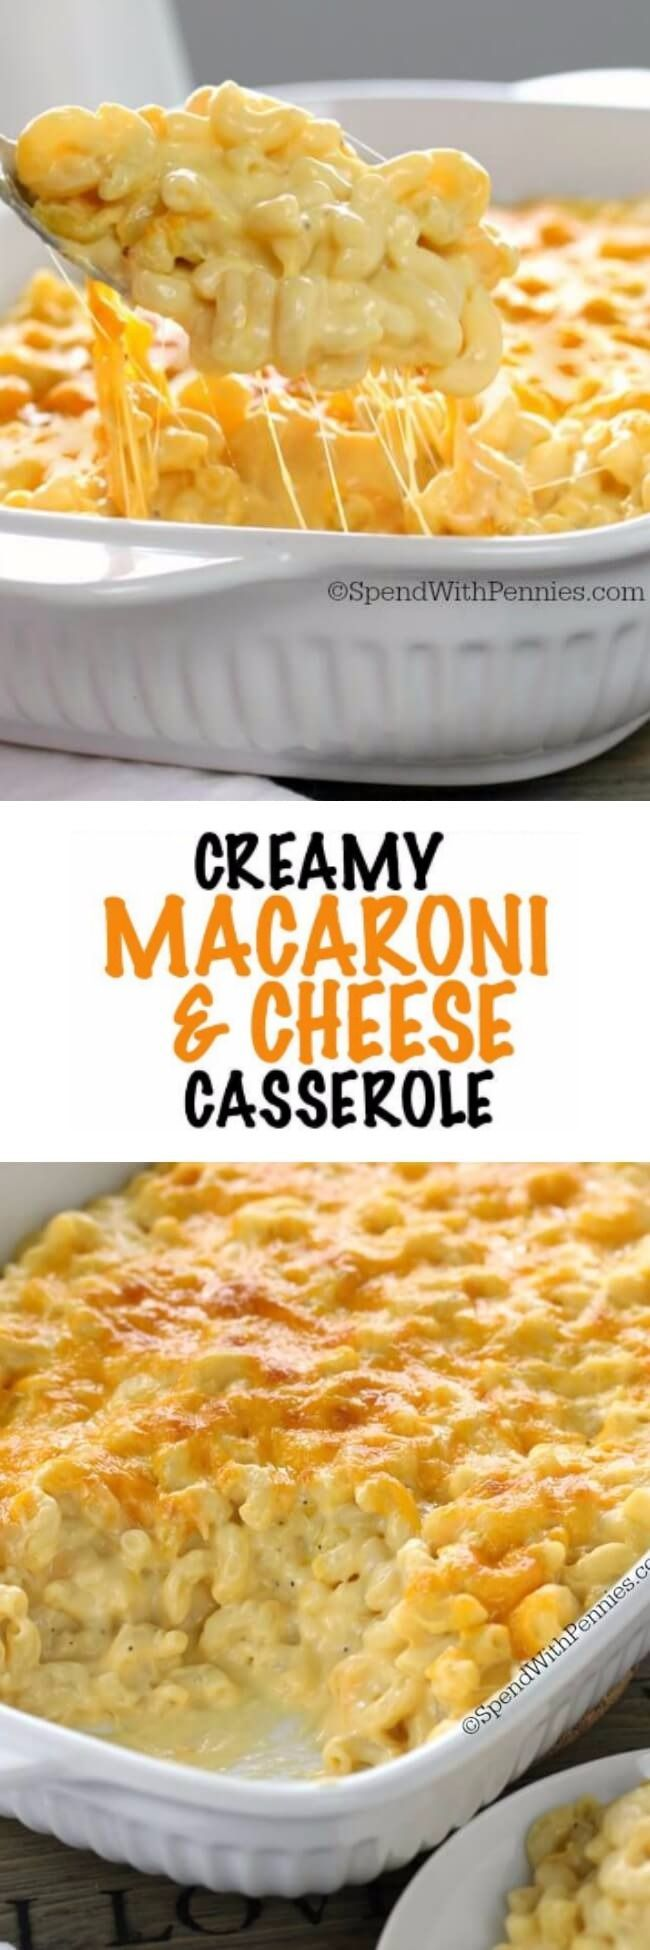 This Creamy Macaroni and Cheese Casserole is a show stopper! It's easy to make with tons of rich cheese sauce and a specail ingredient making it extra delicious!